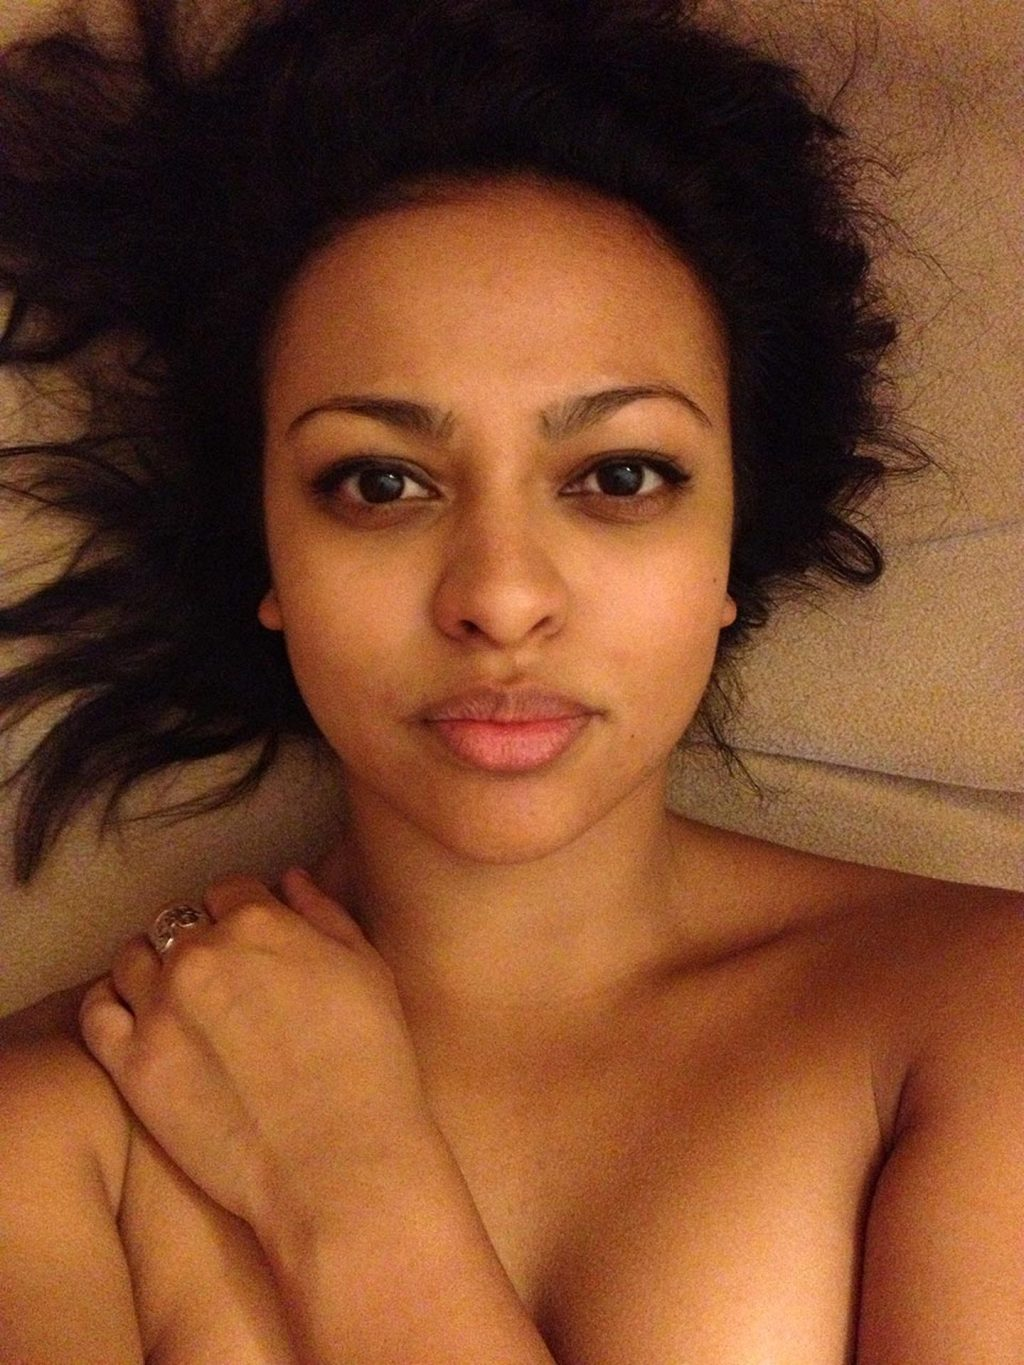 Ellenore Scott Nude Leaked The Fappening (9 Photos)